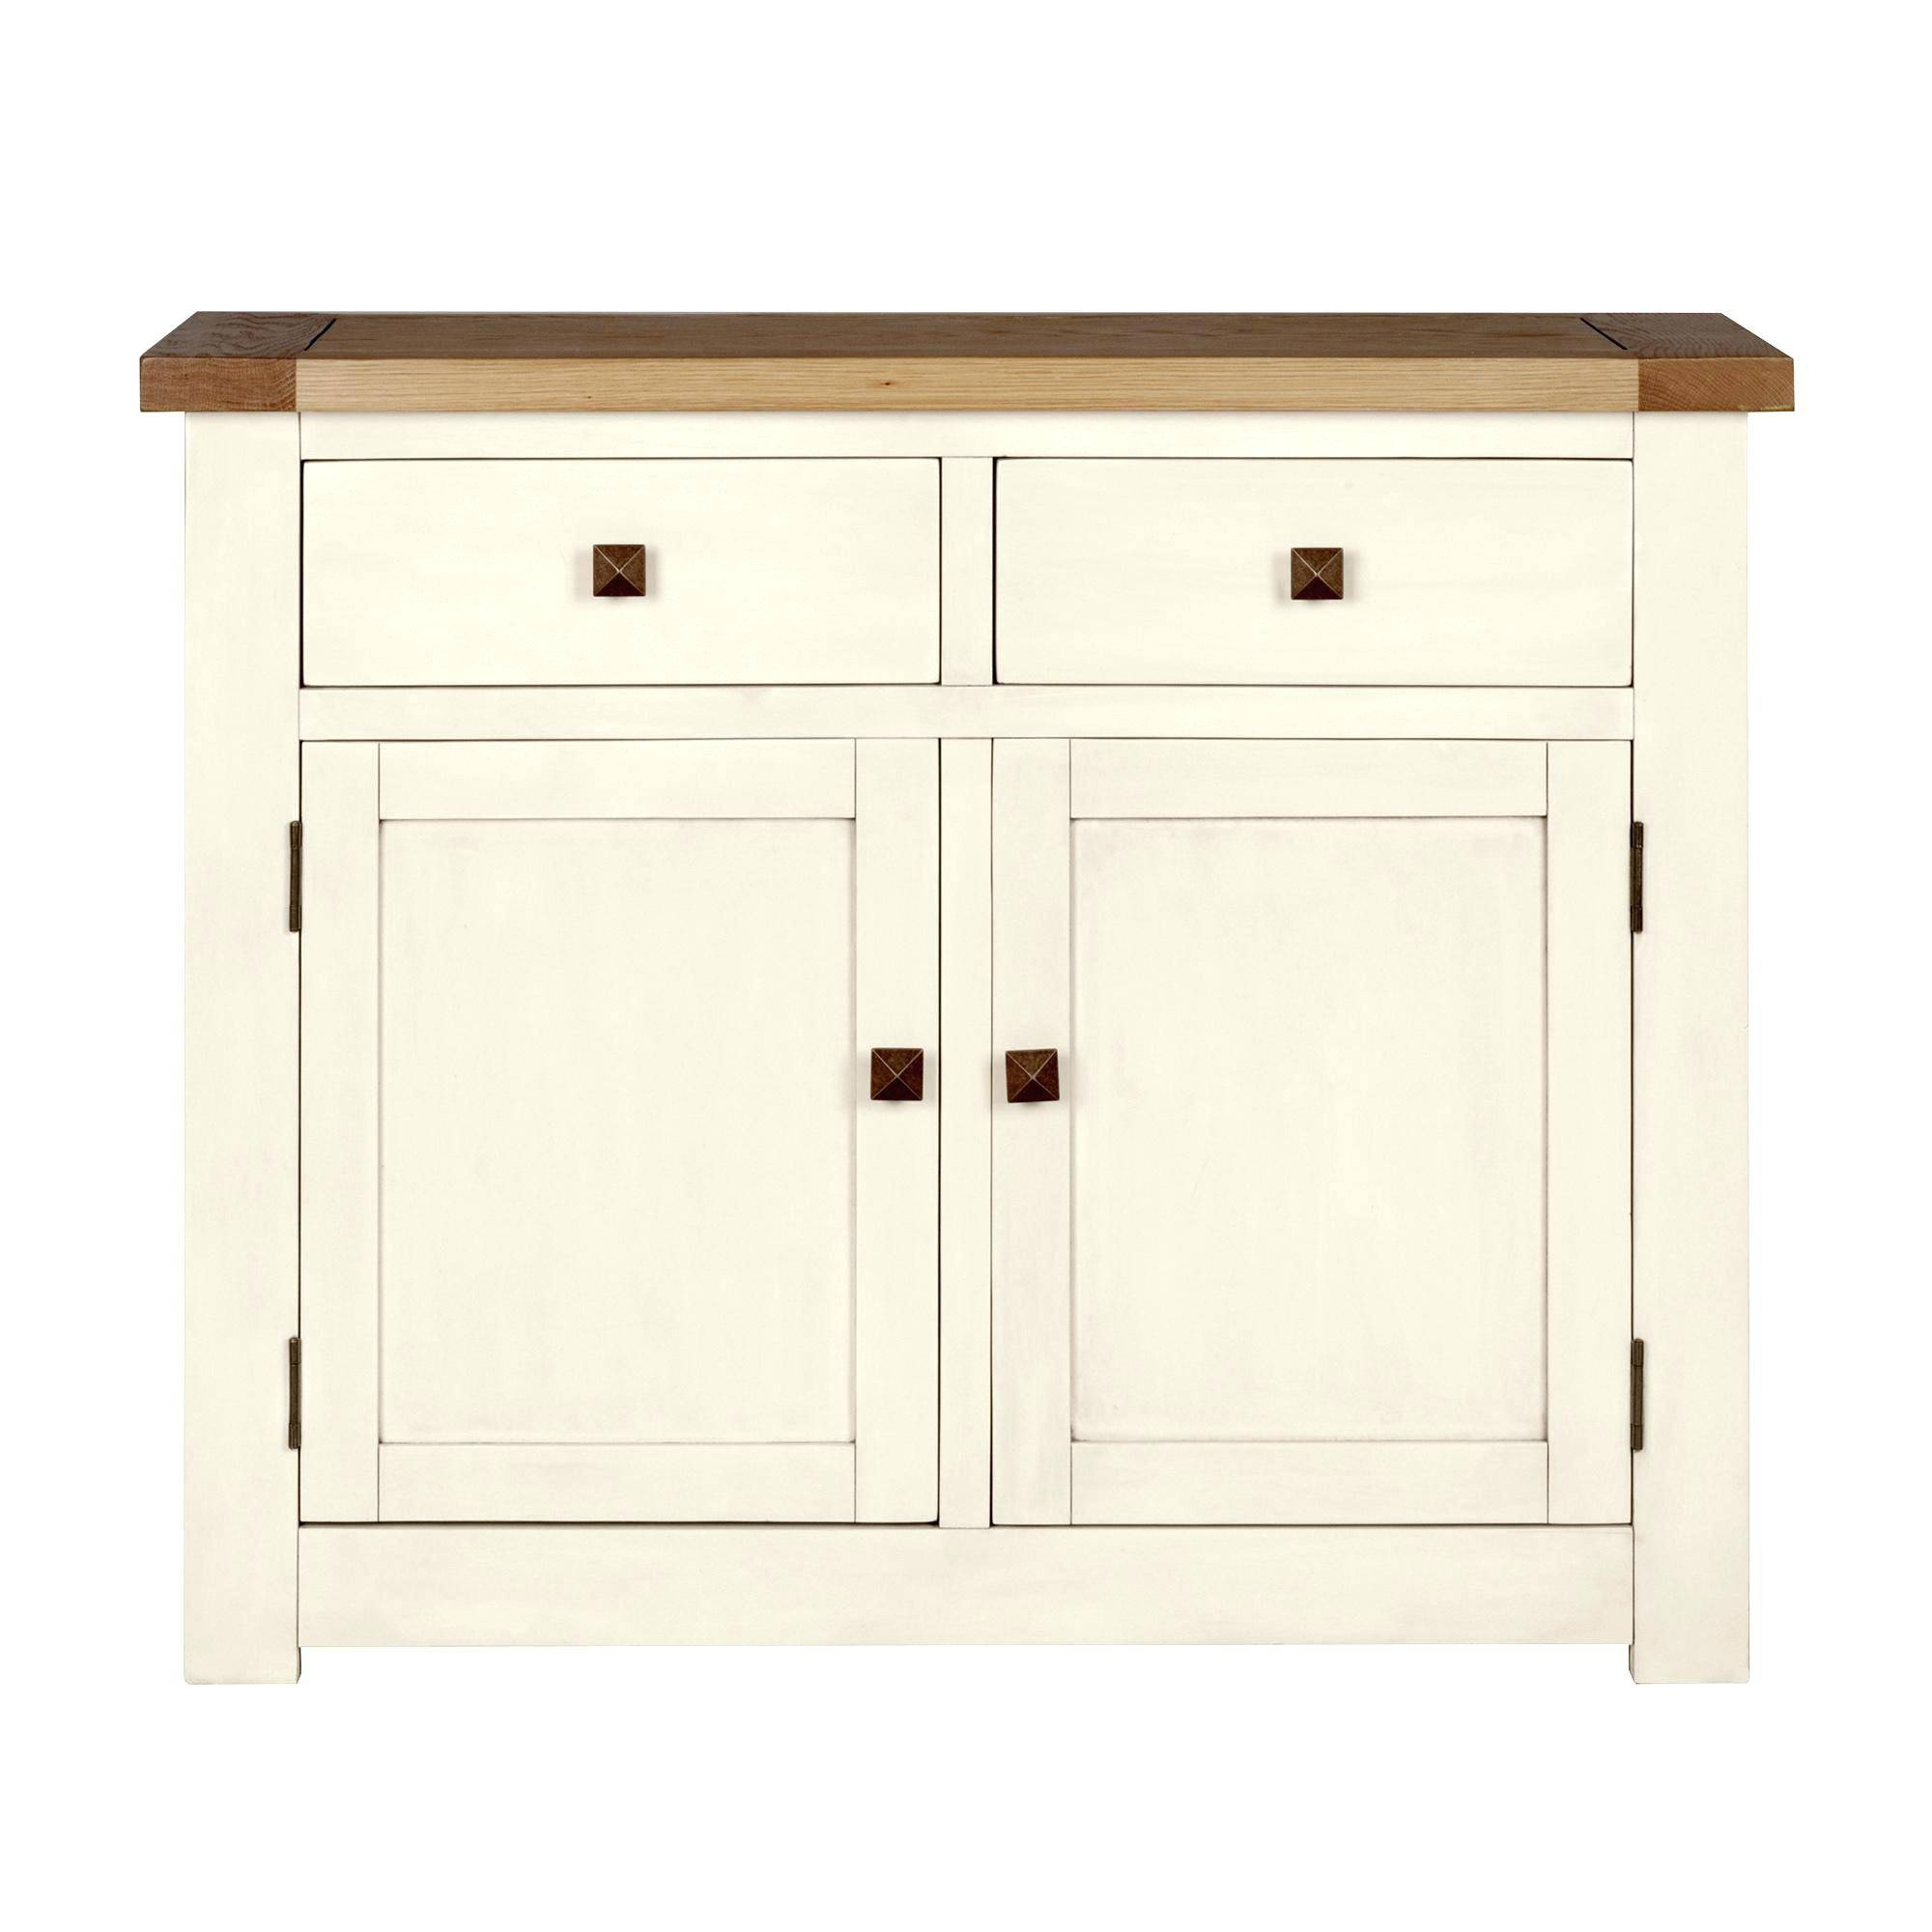 Cream Sideboards Cream Sideboard Sideboards Cream And Oak – Soops (View 7 of 15)